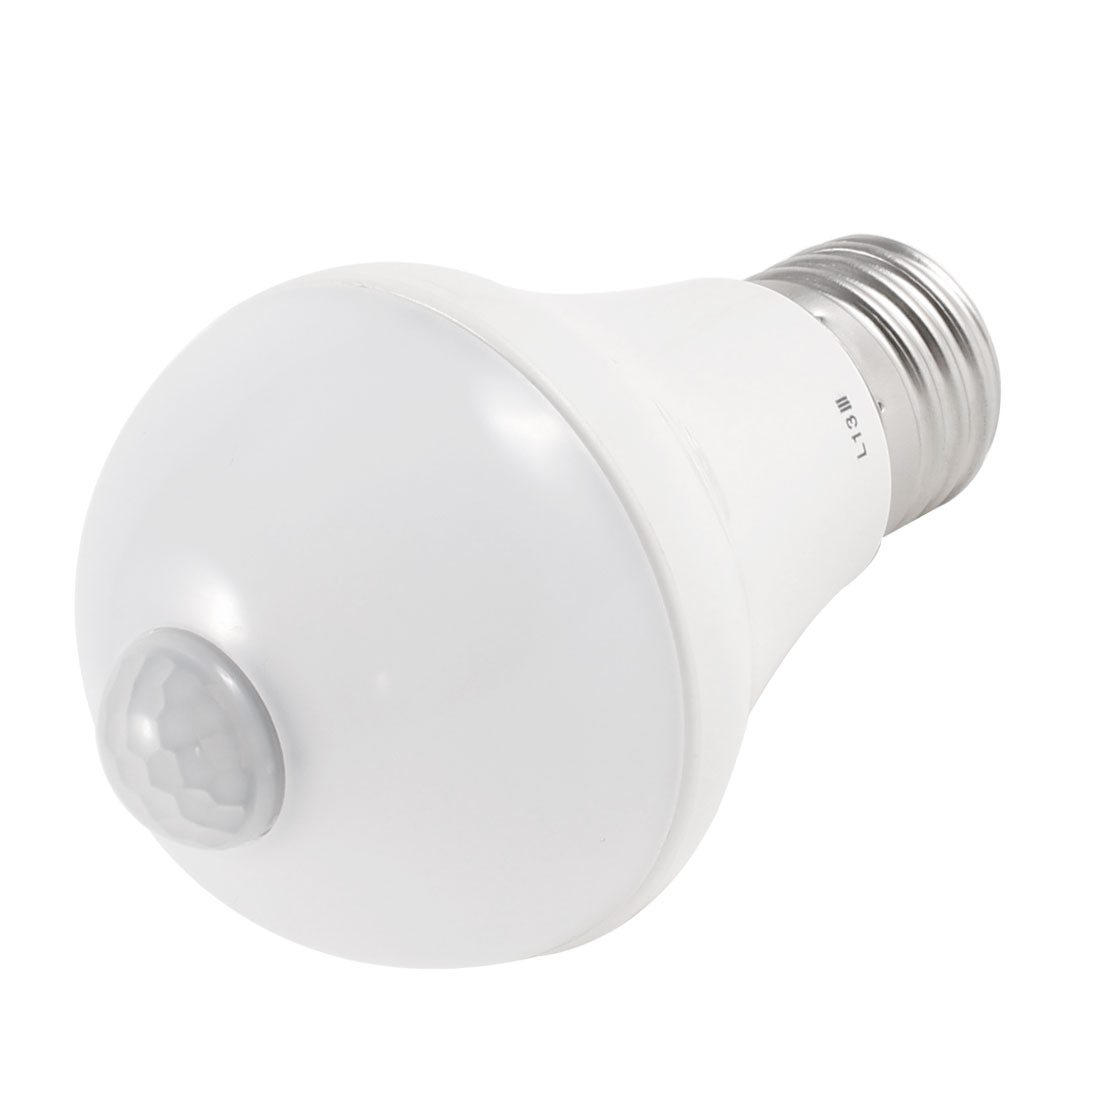 Indoor E27 Motion Sensor Warm White Light LED Ball Bulb Lamp 5W AC 220V